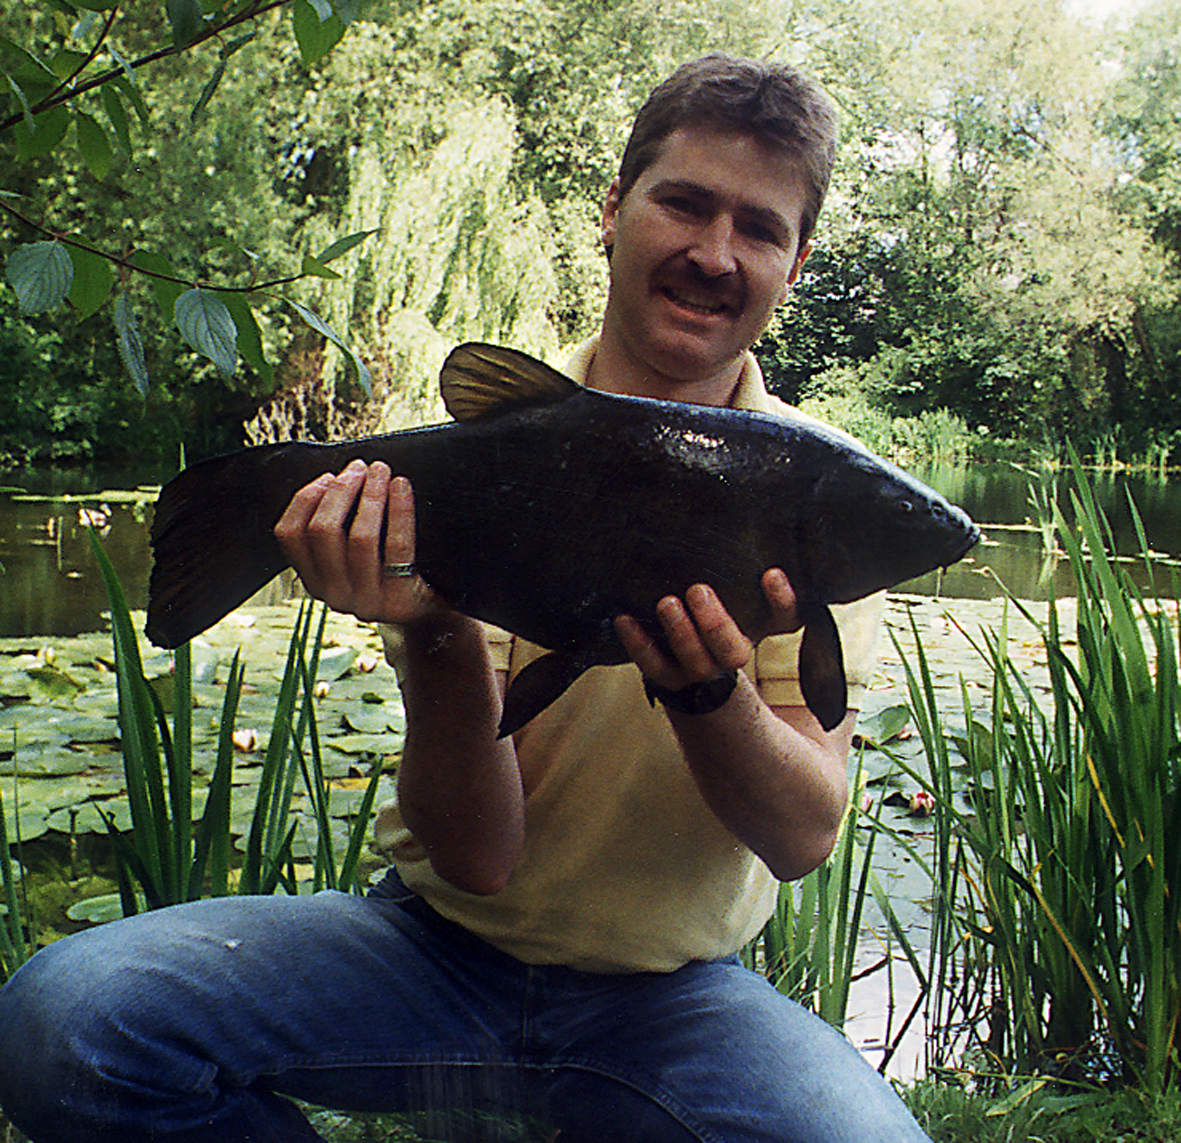 Me, when I was young! A 7lb 10oz tench caught on a single grain of corn between the lily pads.